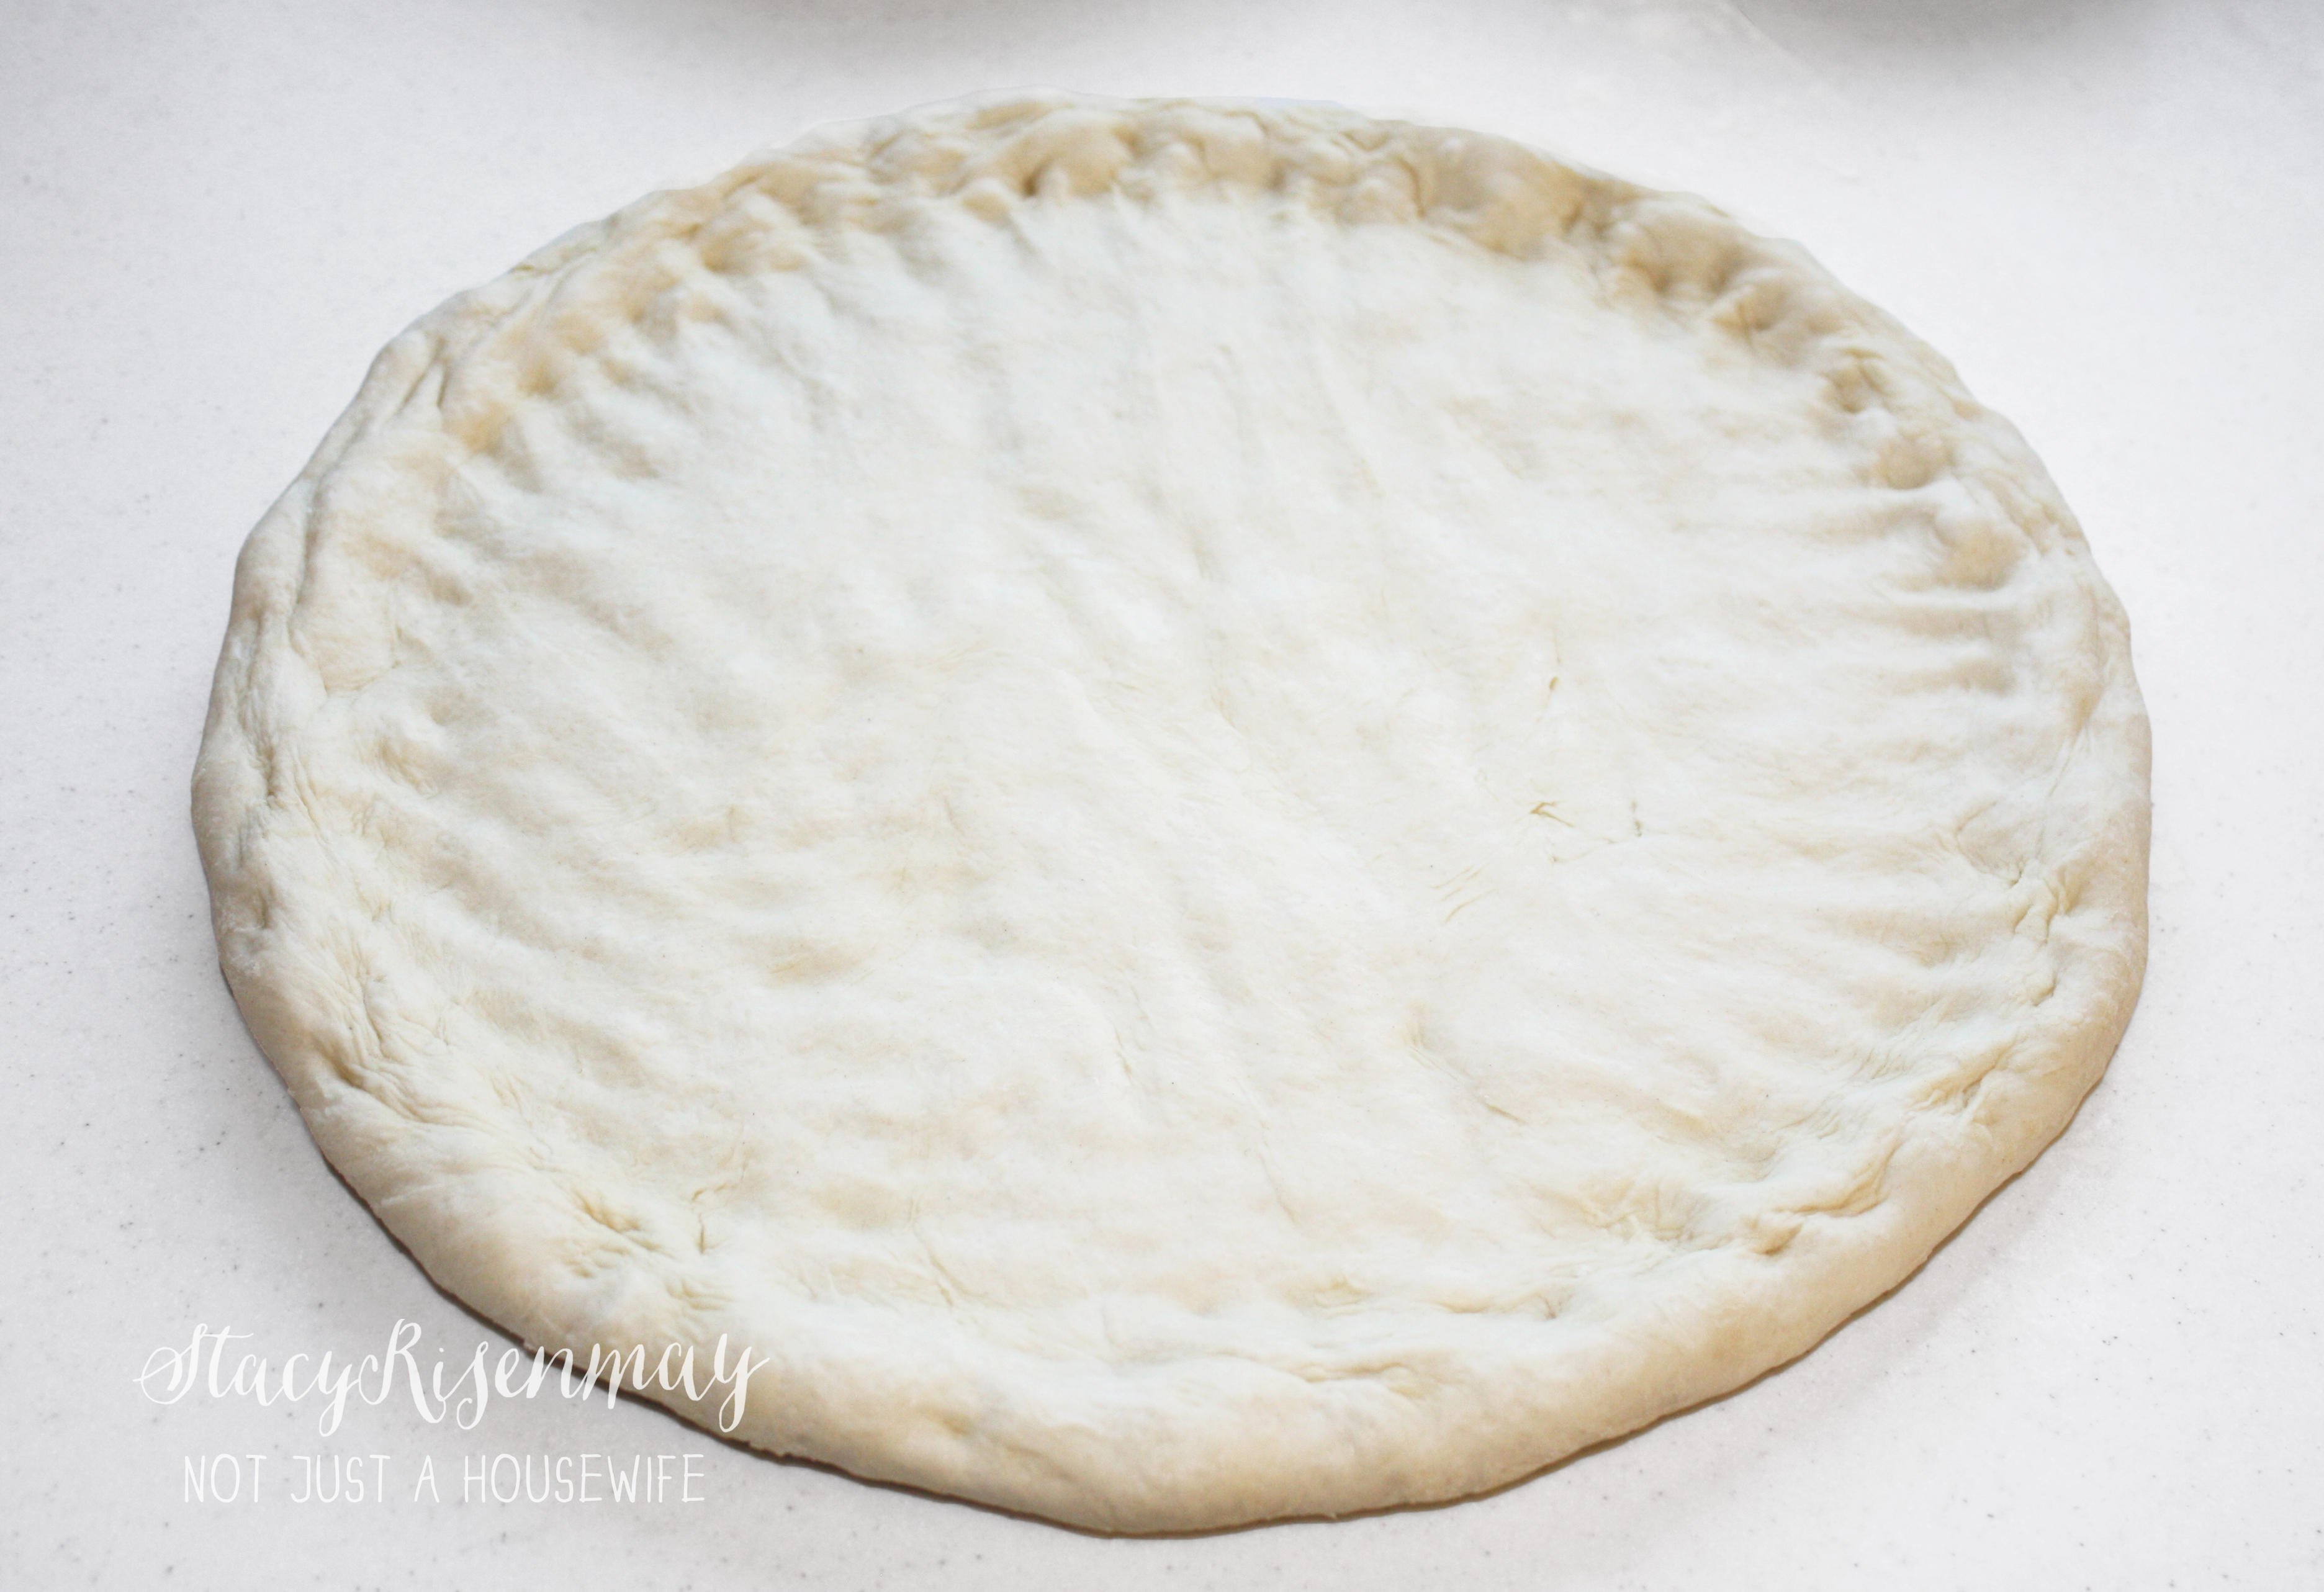 Super Easy Pizza Dough! - Stacy Risenmay